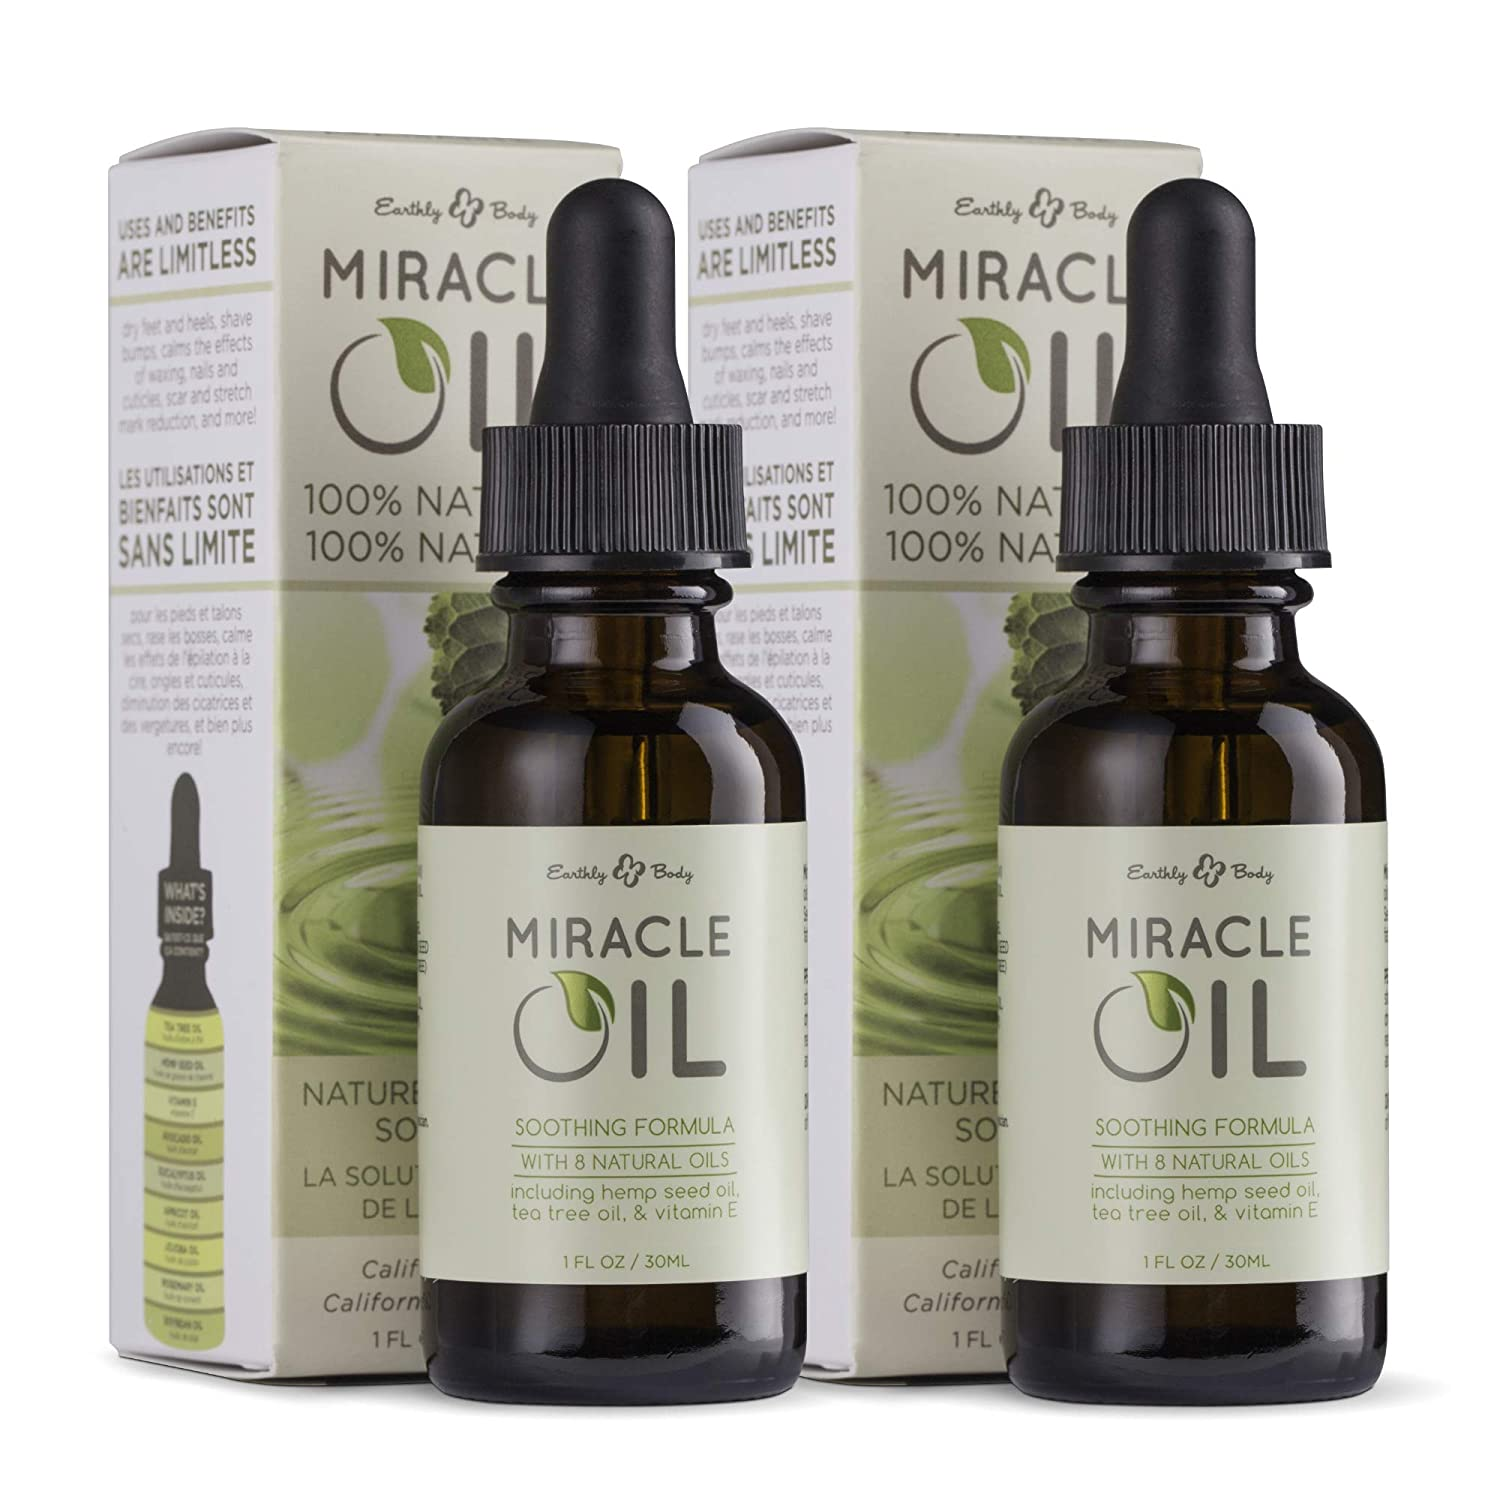 Earthly Body Miracle Oil, 1 fl. oz. - 2 Pack - 100% Natural Tea Tree Oil, Hemp Seed Oil & Vitamin E - Moisturizer, Calms Skin Irritations, Helps Smooth Wrinkles - Gluten Free, 100% Vegan : Hemp Oil : Beauty